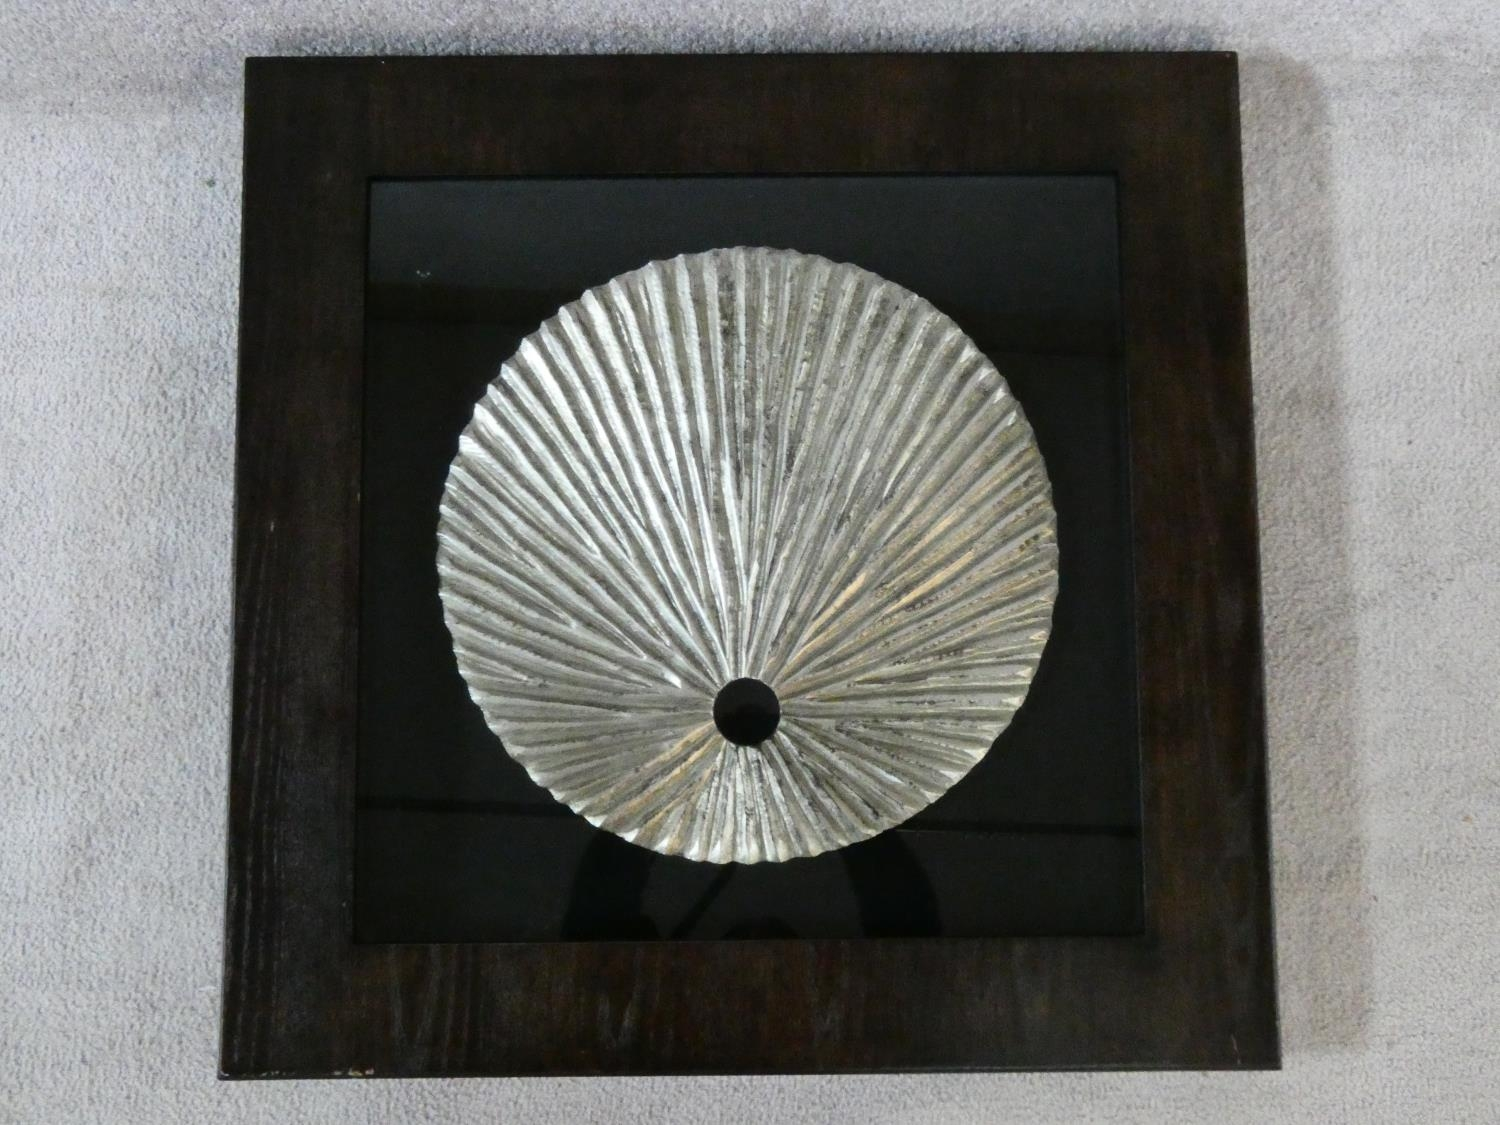 A contemporary carved wood textured silver disk, mounted on black, shadow box framed. H.80 W.80cm